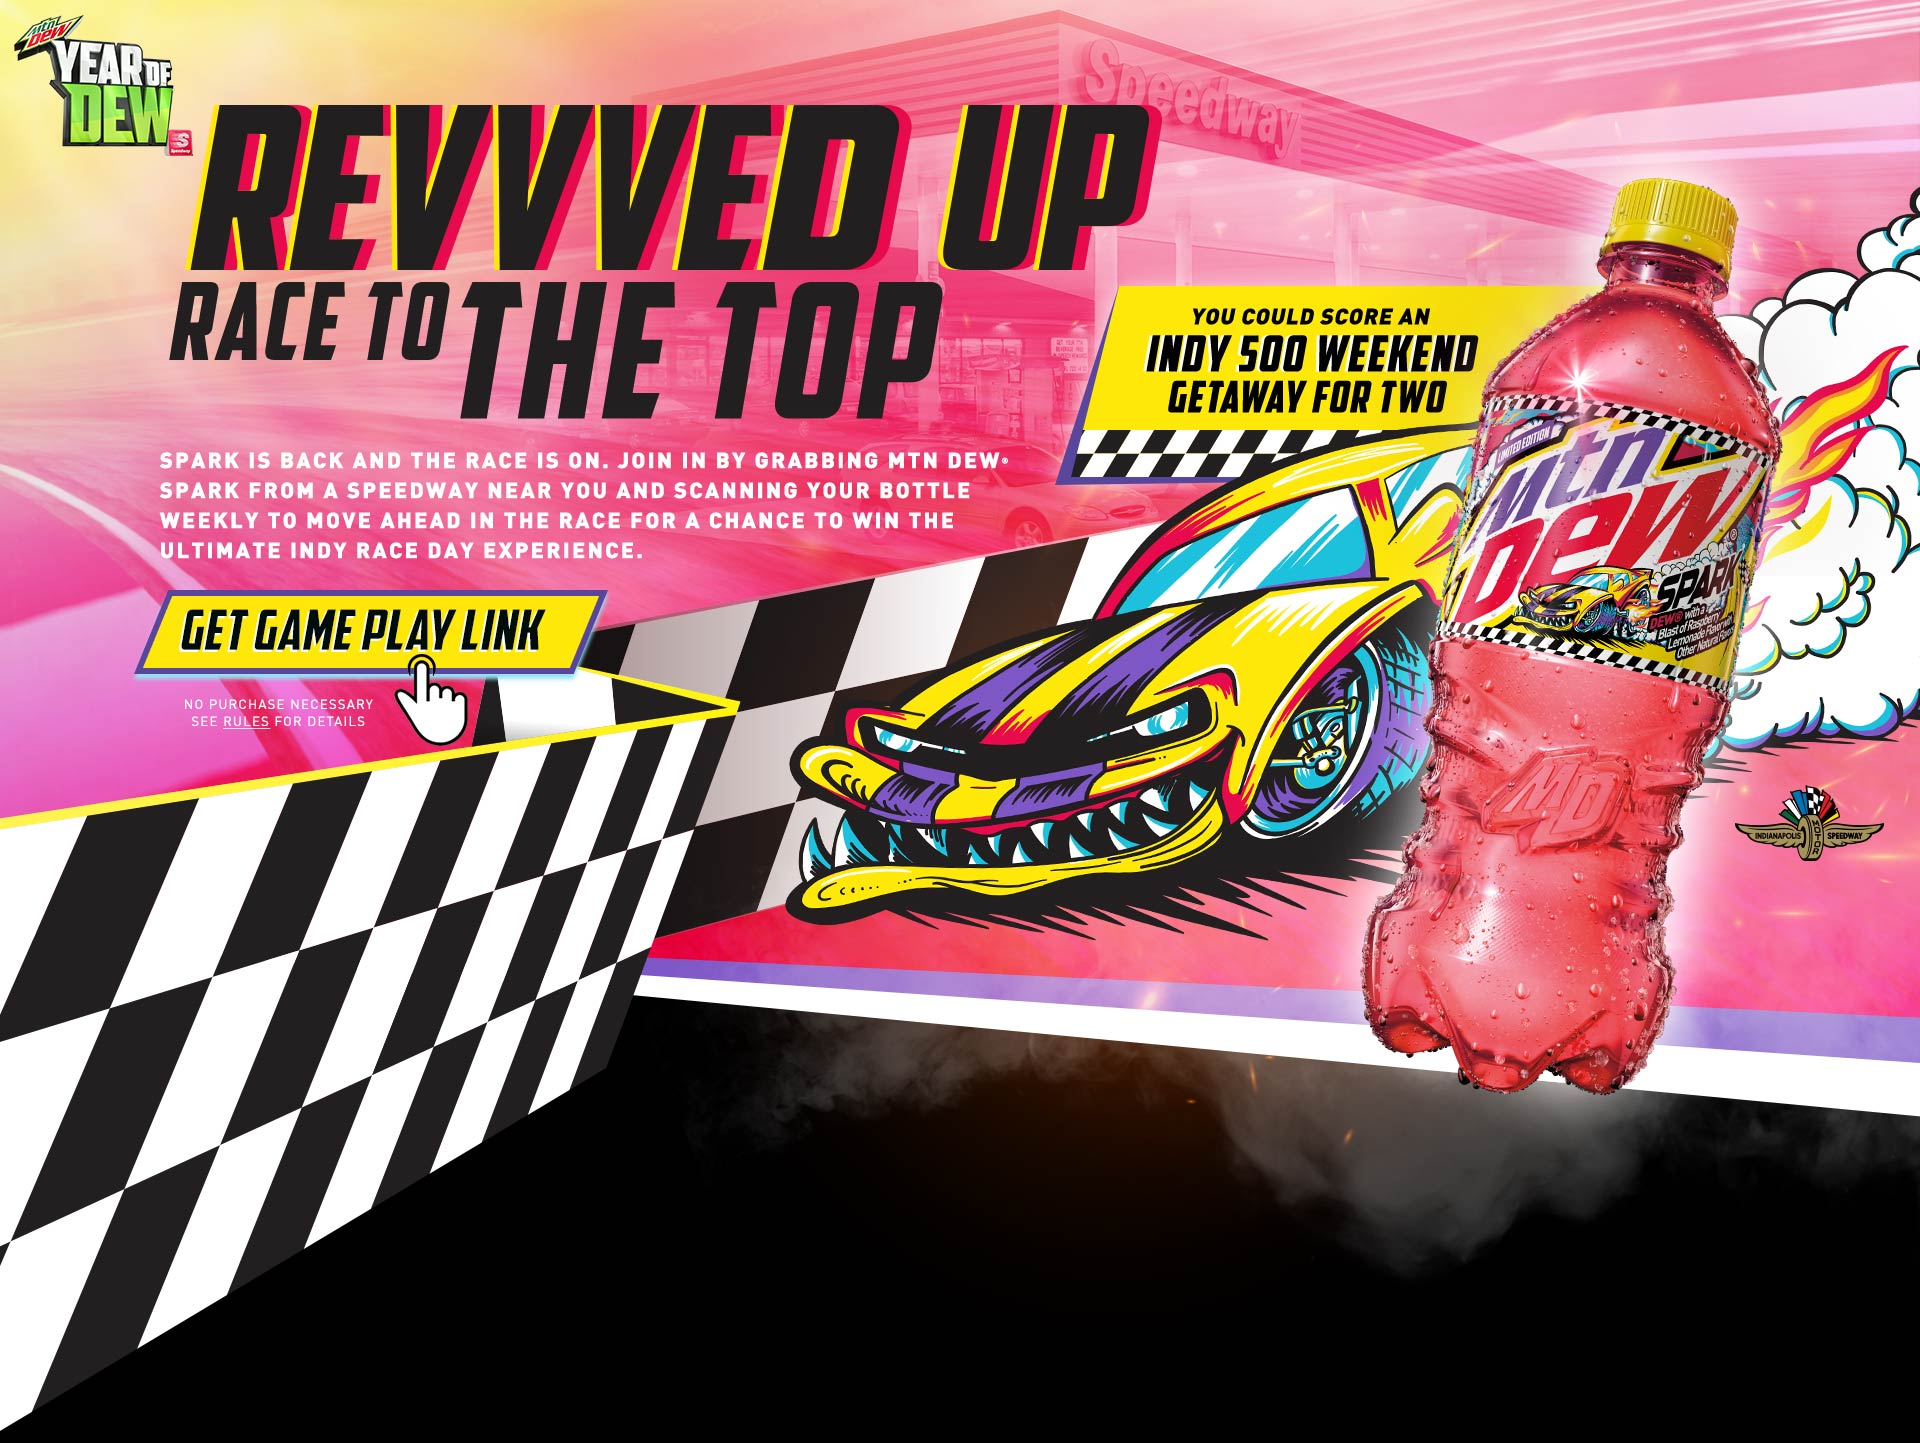 Mtn Dew Race To The Top